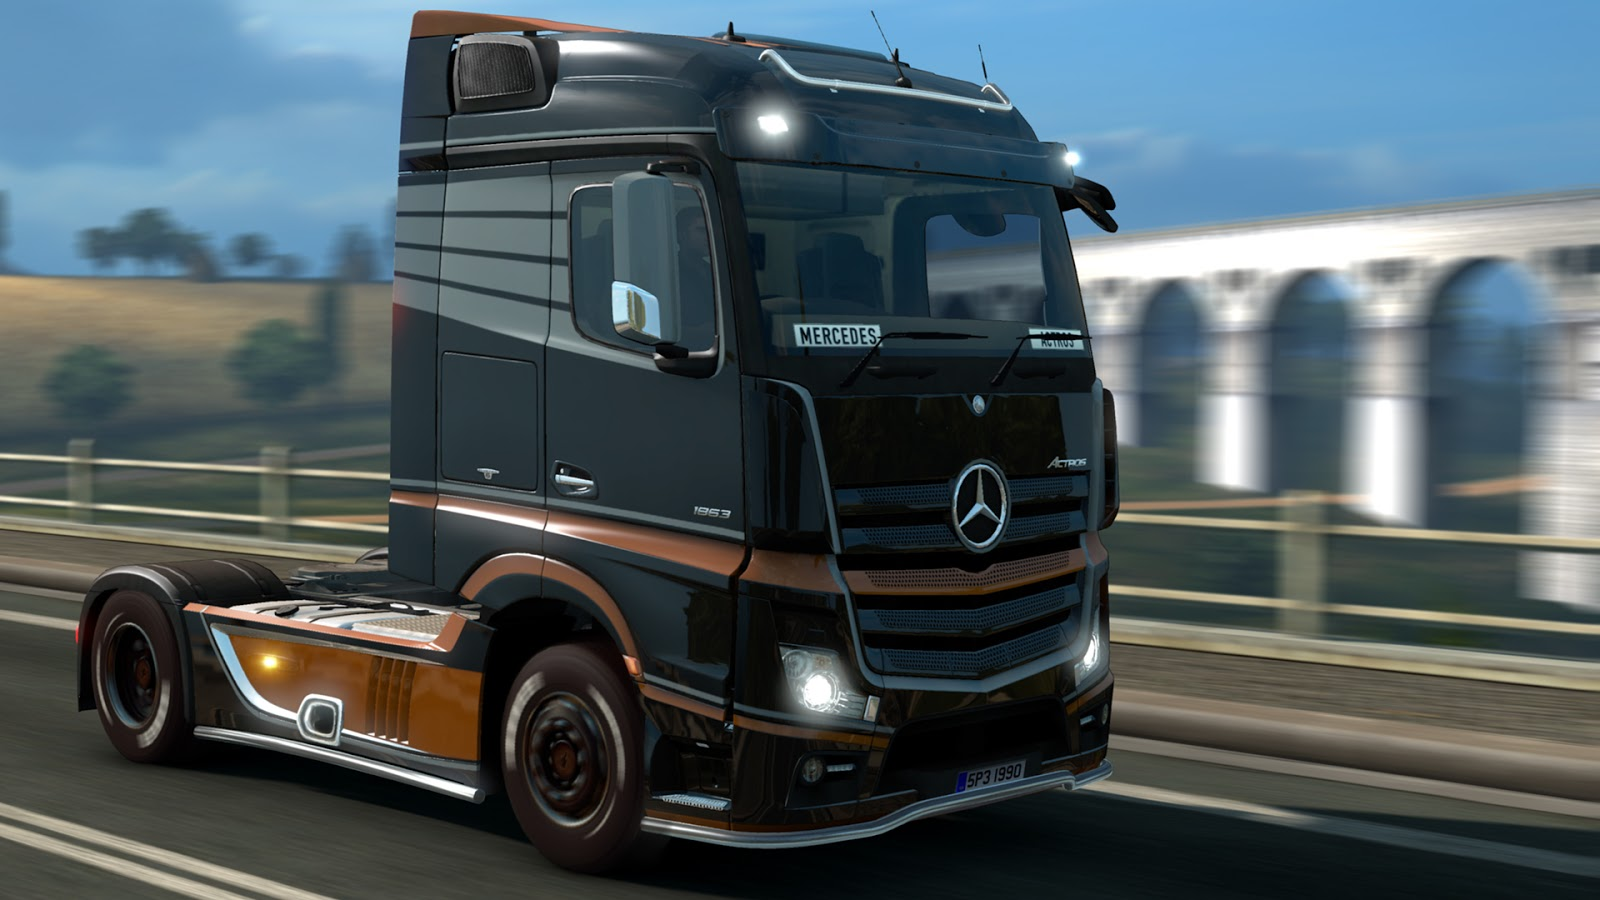 Scs software 39 s blog get behind the wheel of mercedes benz for The new mercedes benz truck